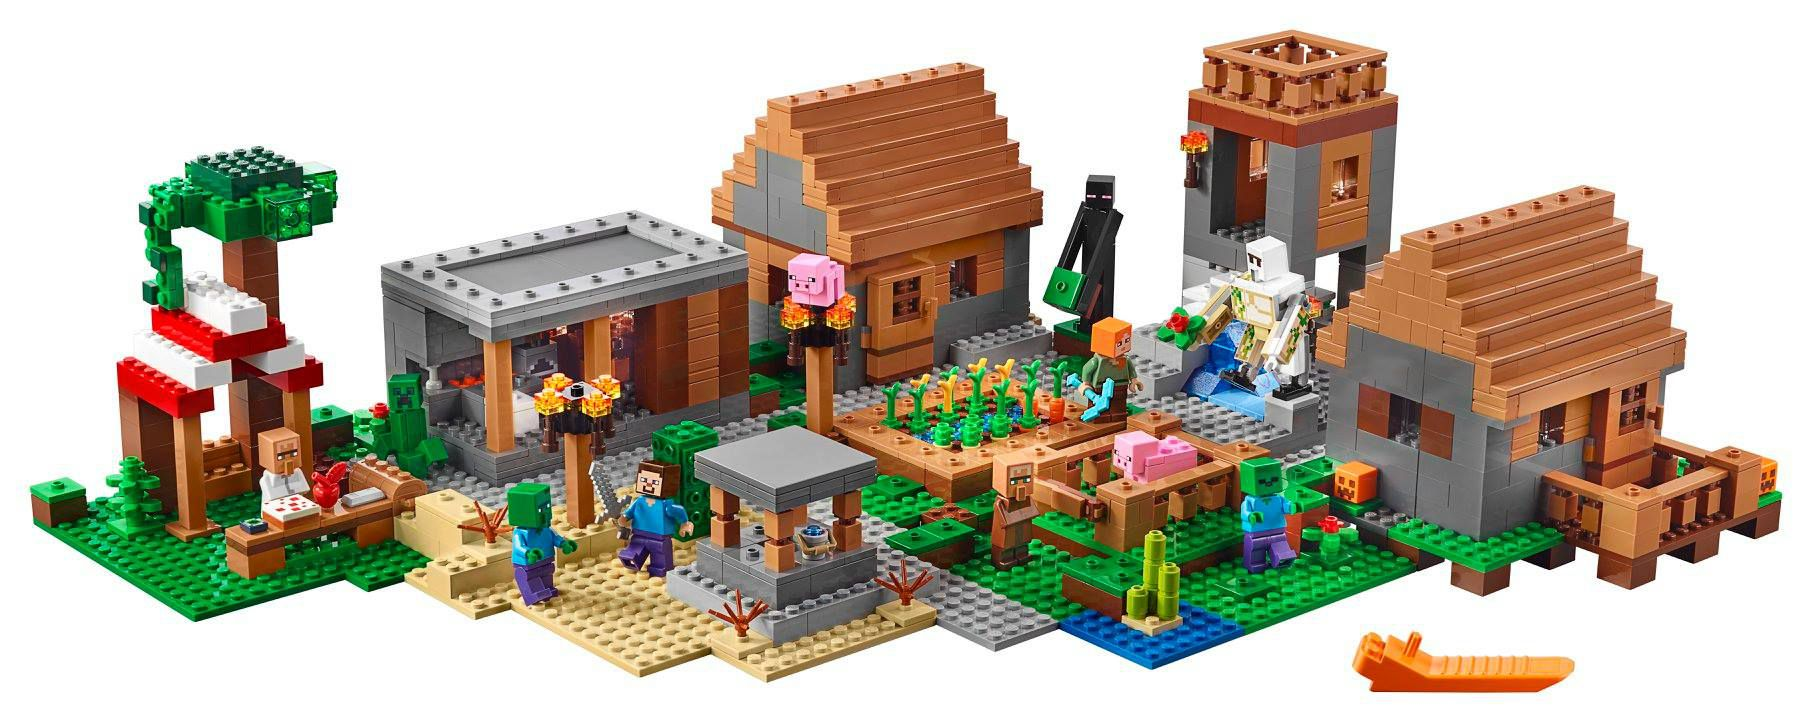 LEGO Minecraft 21128 Das Dorf LEGO-Minecraft-21128-The-Village_img01.jpg